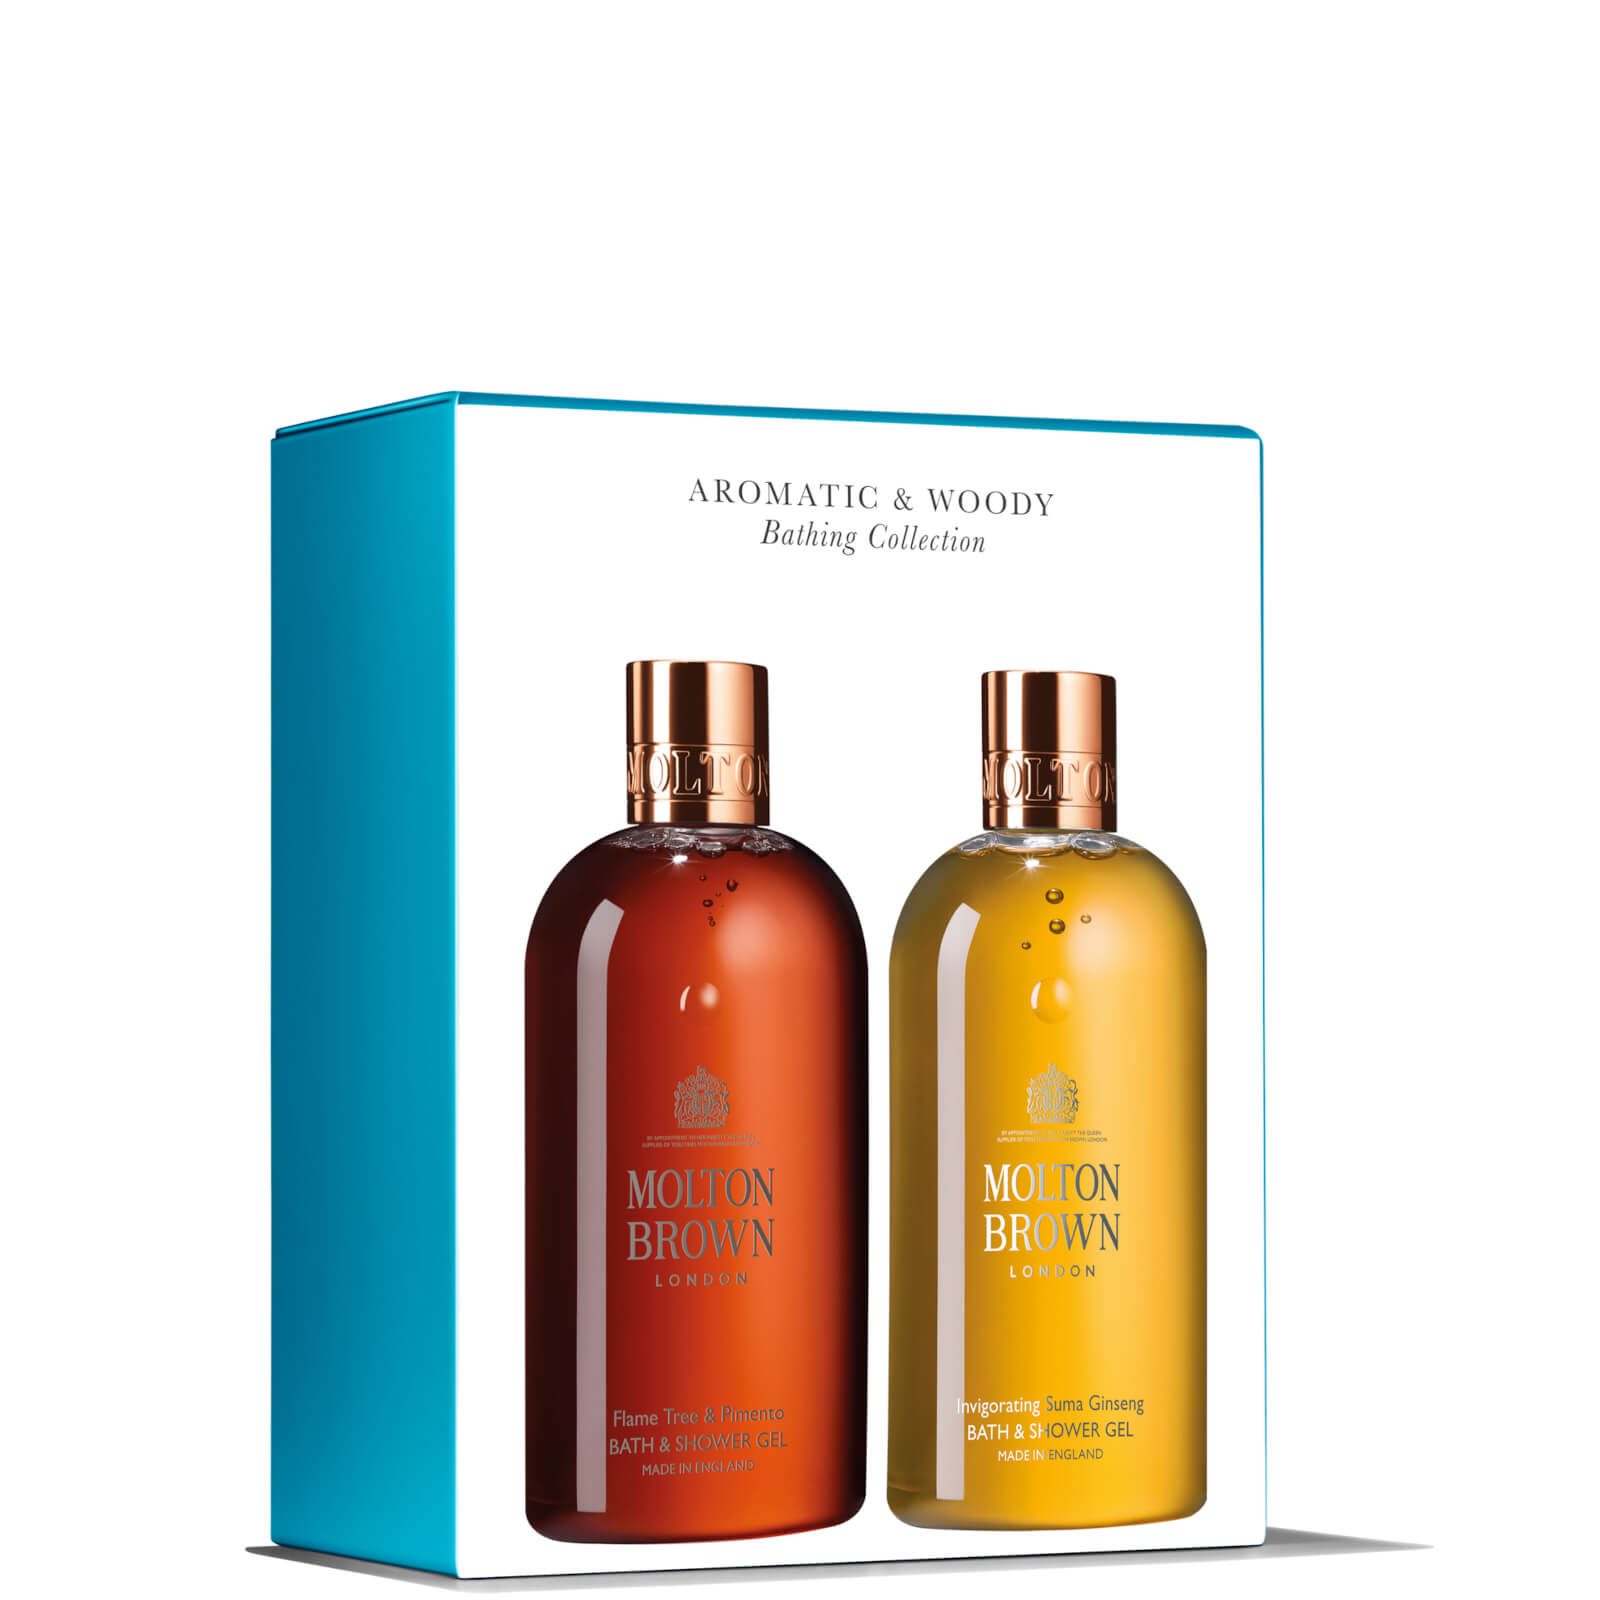 Molton Brown Aromatic and Woody Gift Set